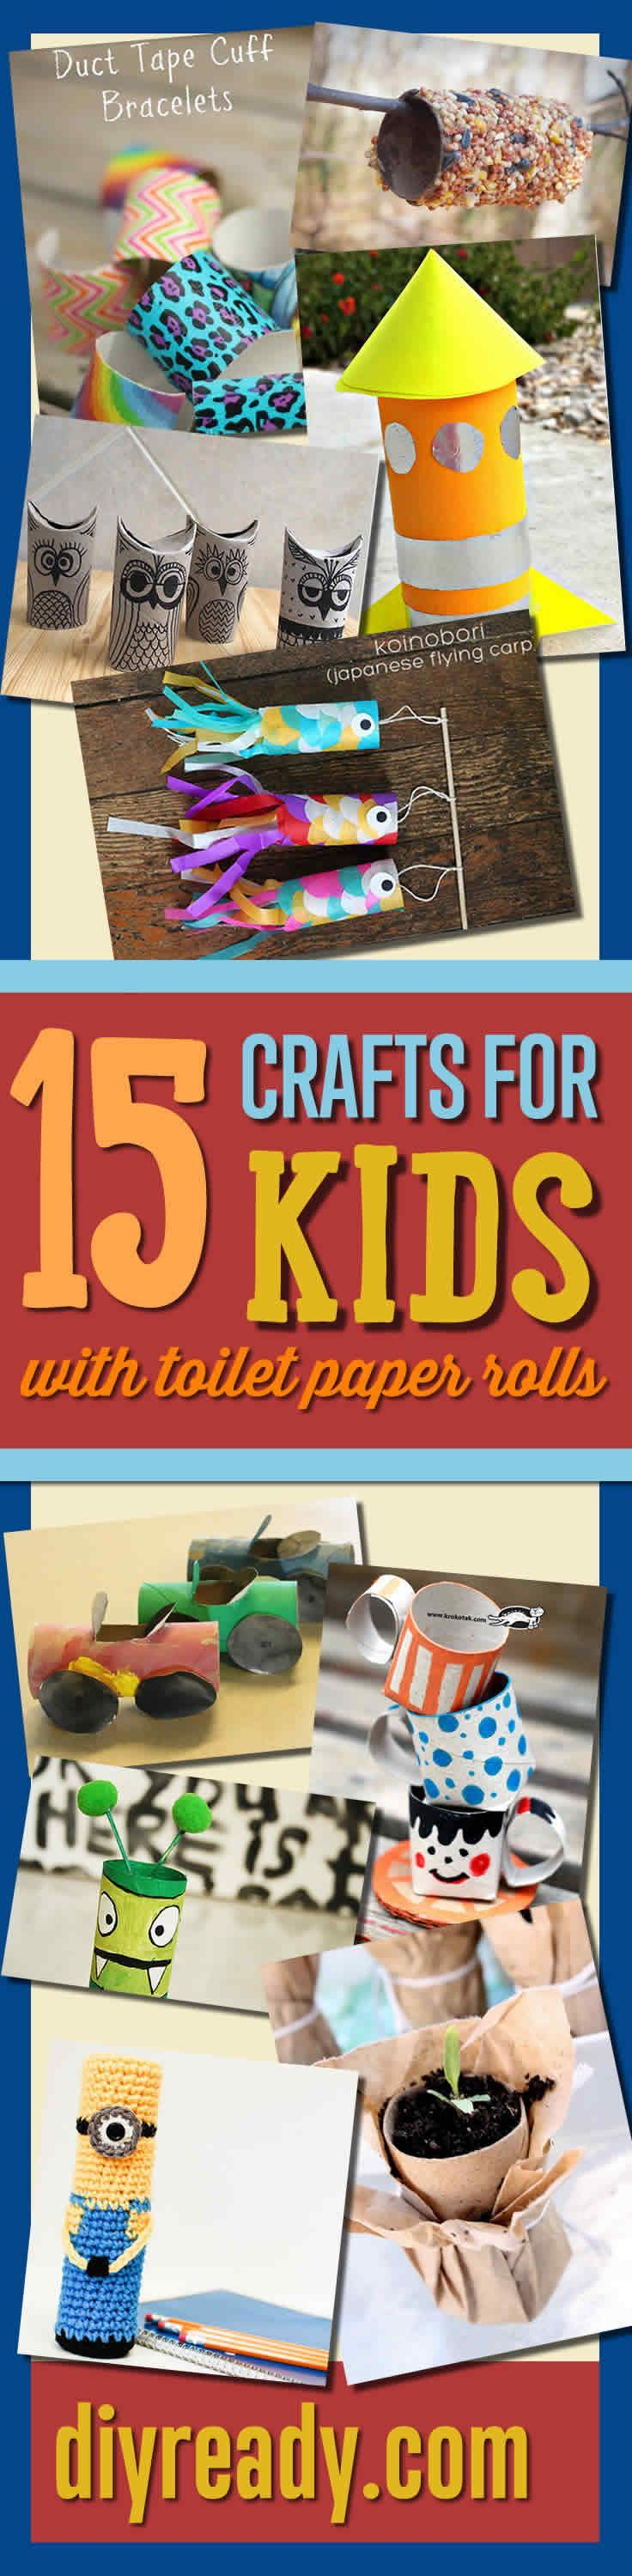 15 Toilet Paper Roll Crafts For Kids | Fun and Creative DIY Projects for Little Ones! http://diyready.com/crafts-for-kids-toilet-paper-roll-craft-projects/